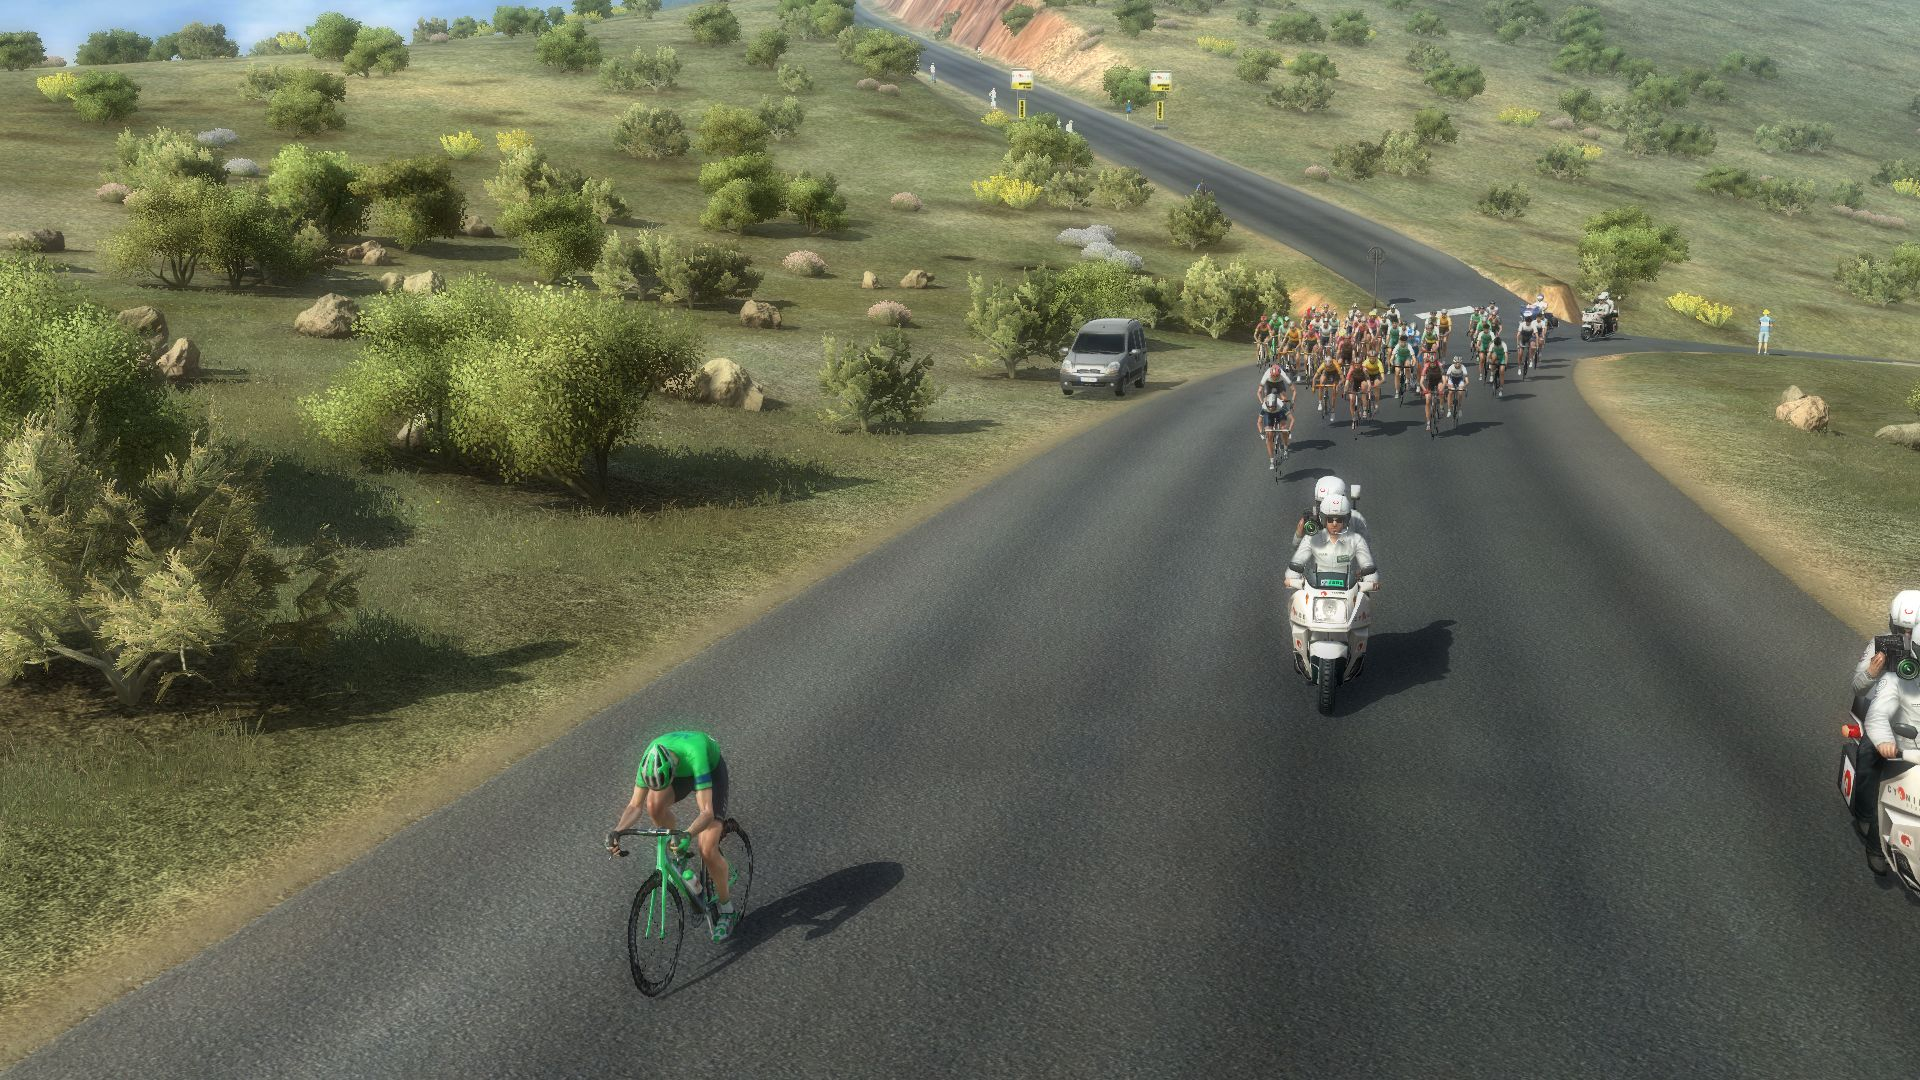 pcmdaily.com/images/mg/2019/Races/C2HC/Eritrea/TOES6%2022.jpg